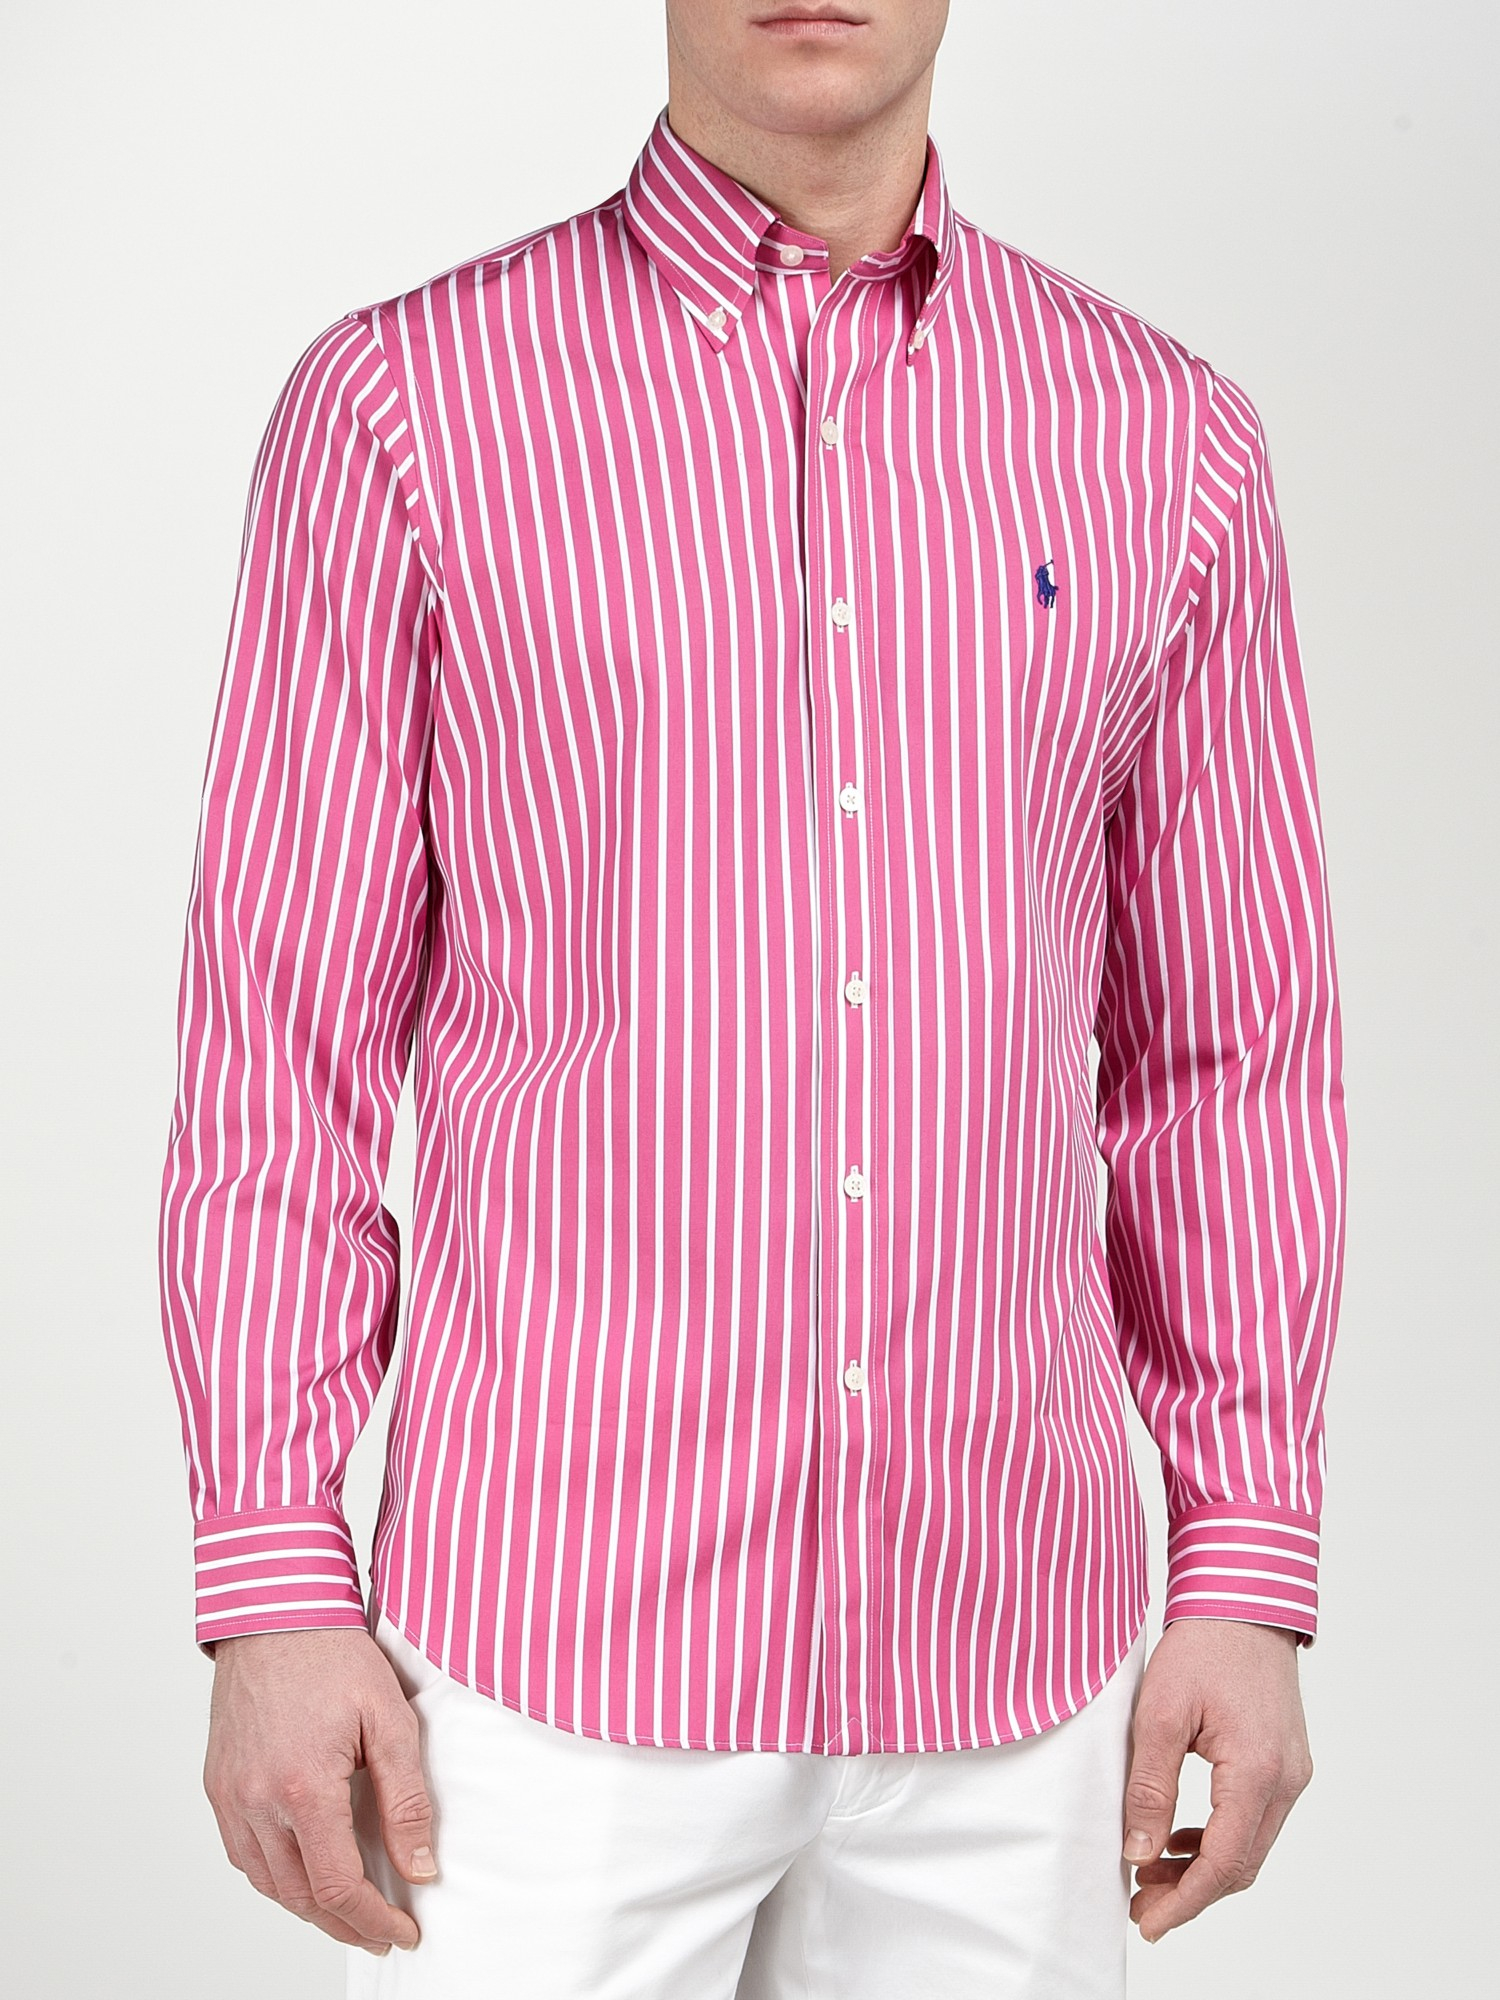 Polo ralph lauren Striped Poplin Shirt in Pink for Men | Lyst